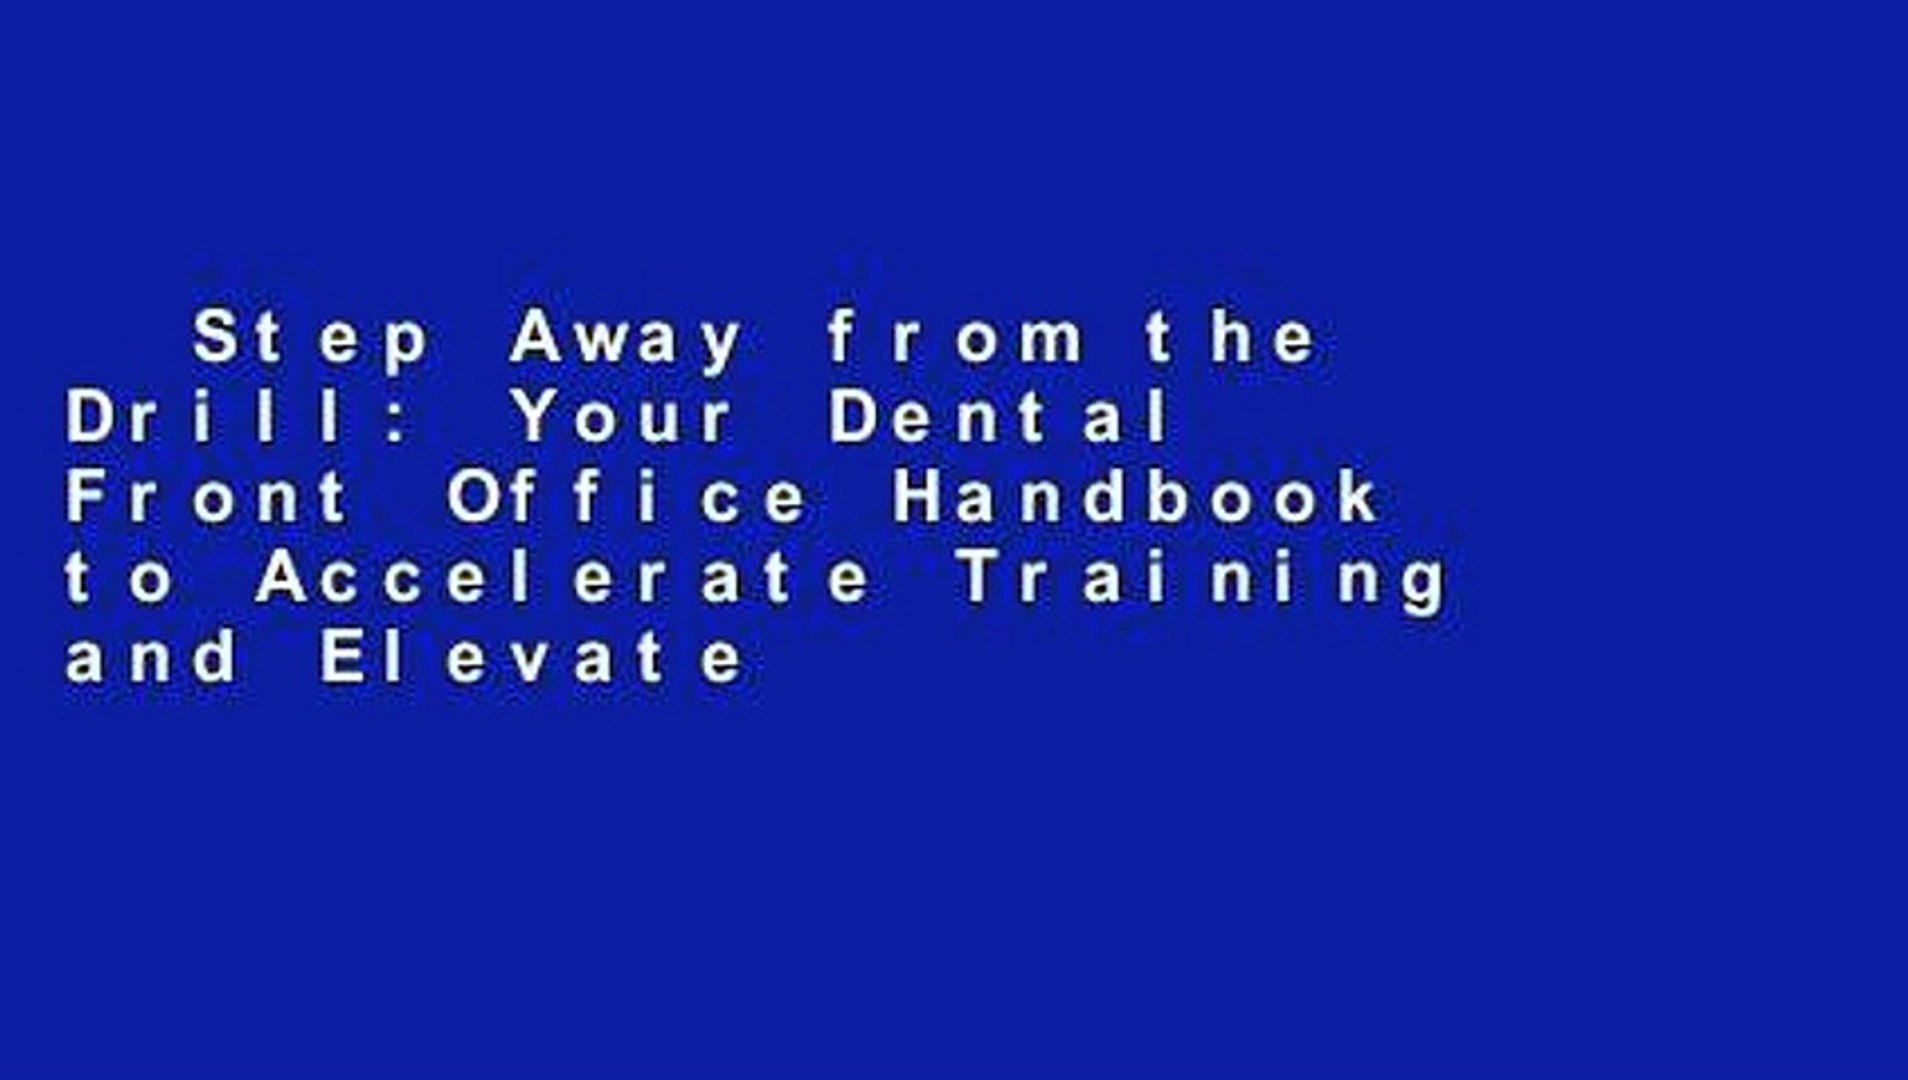 Step Away from the Drill: Your Dental Front Office Handbook to Accelerate Training and Elevate